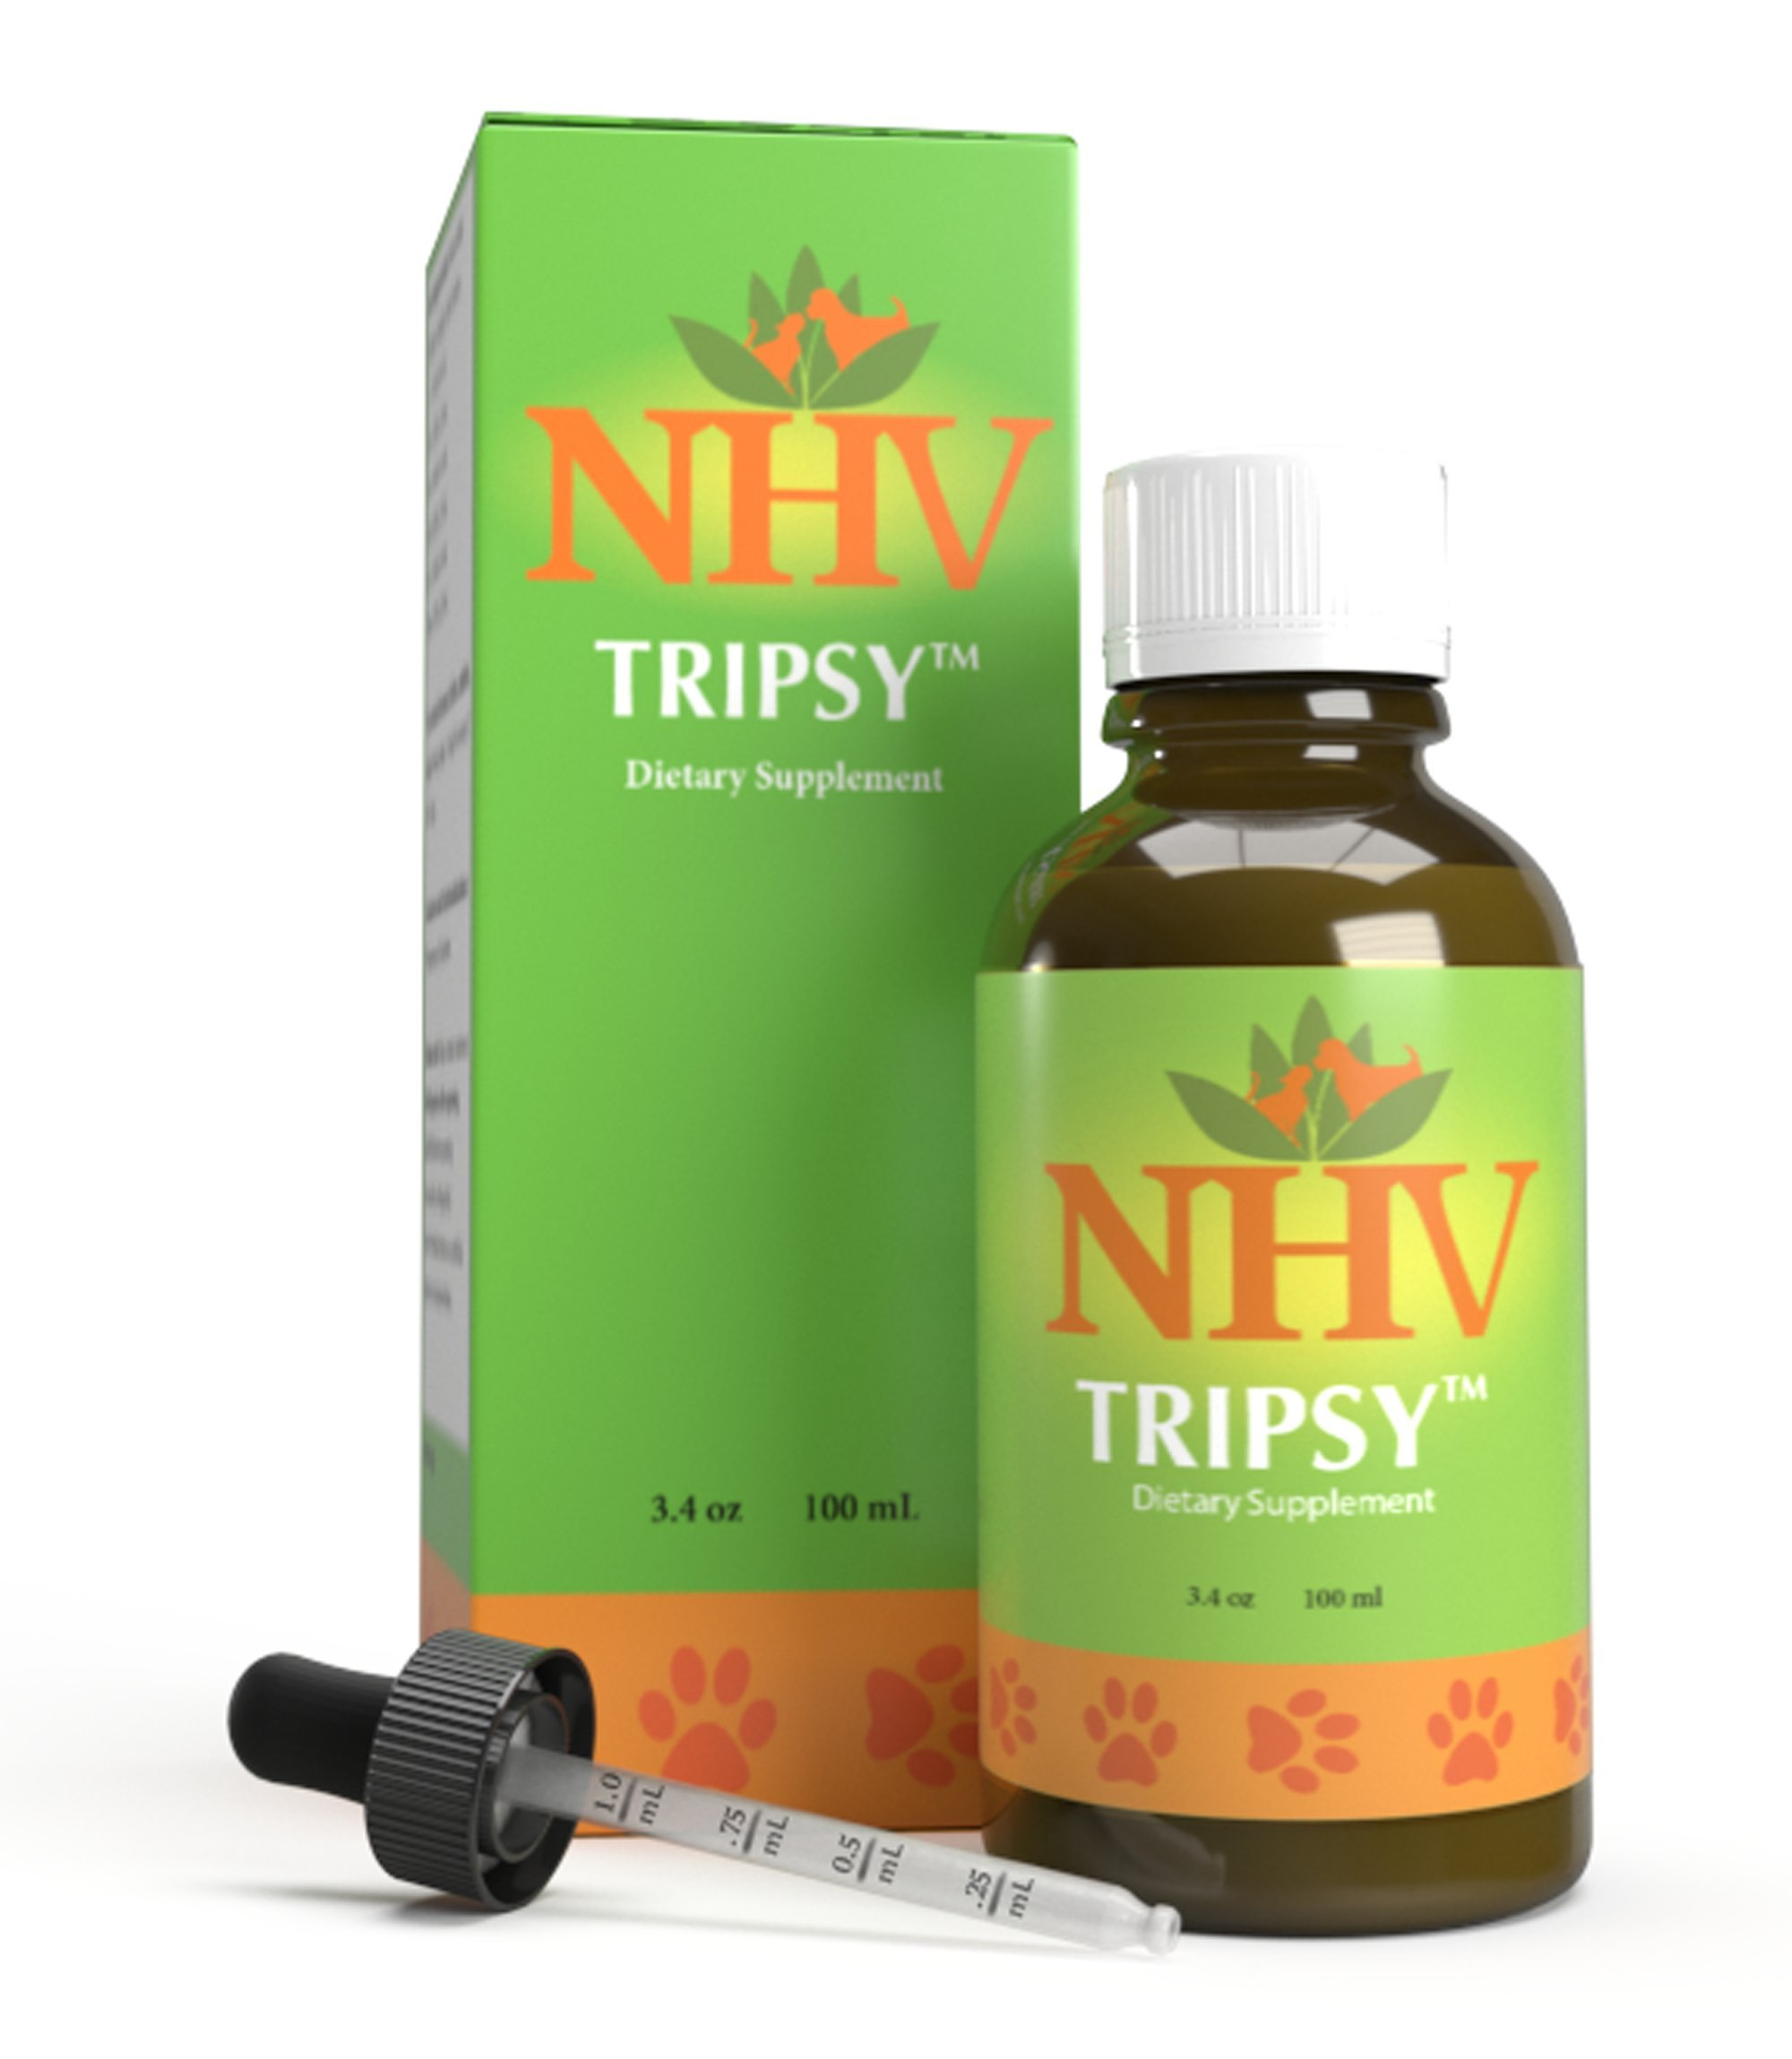 NHV Tripsy - Natural Kidney, Renal (CRF), and Urinary (UTI) Disorders Support for Cats, Dogs, and Small Pets by NHV